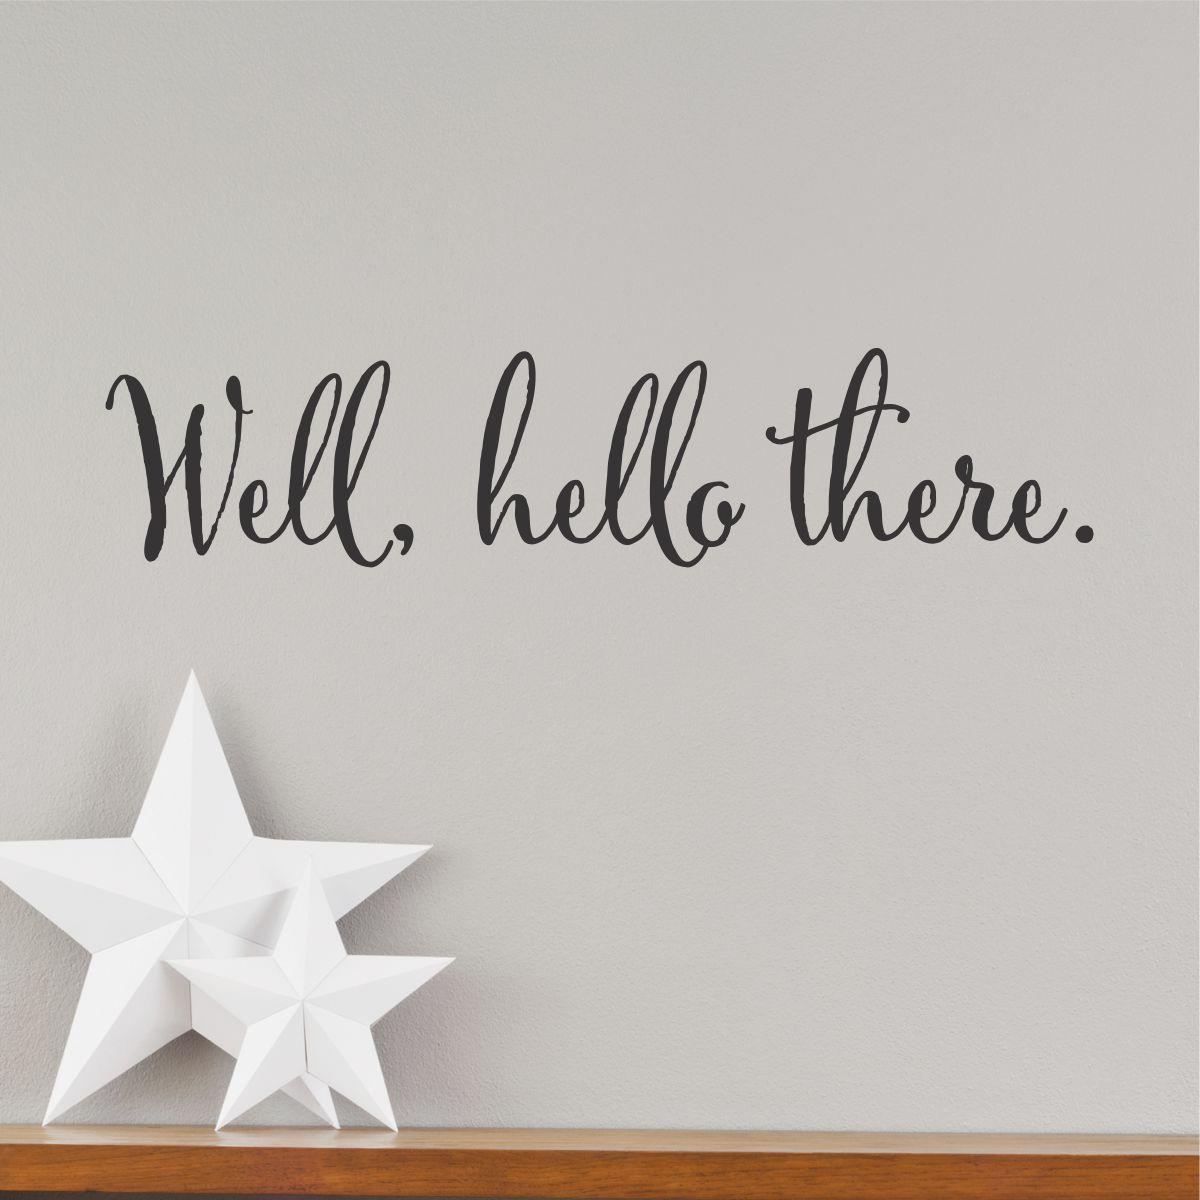 well hello there wall quotes u2122 decal